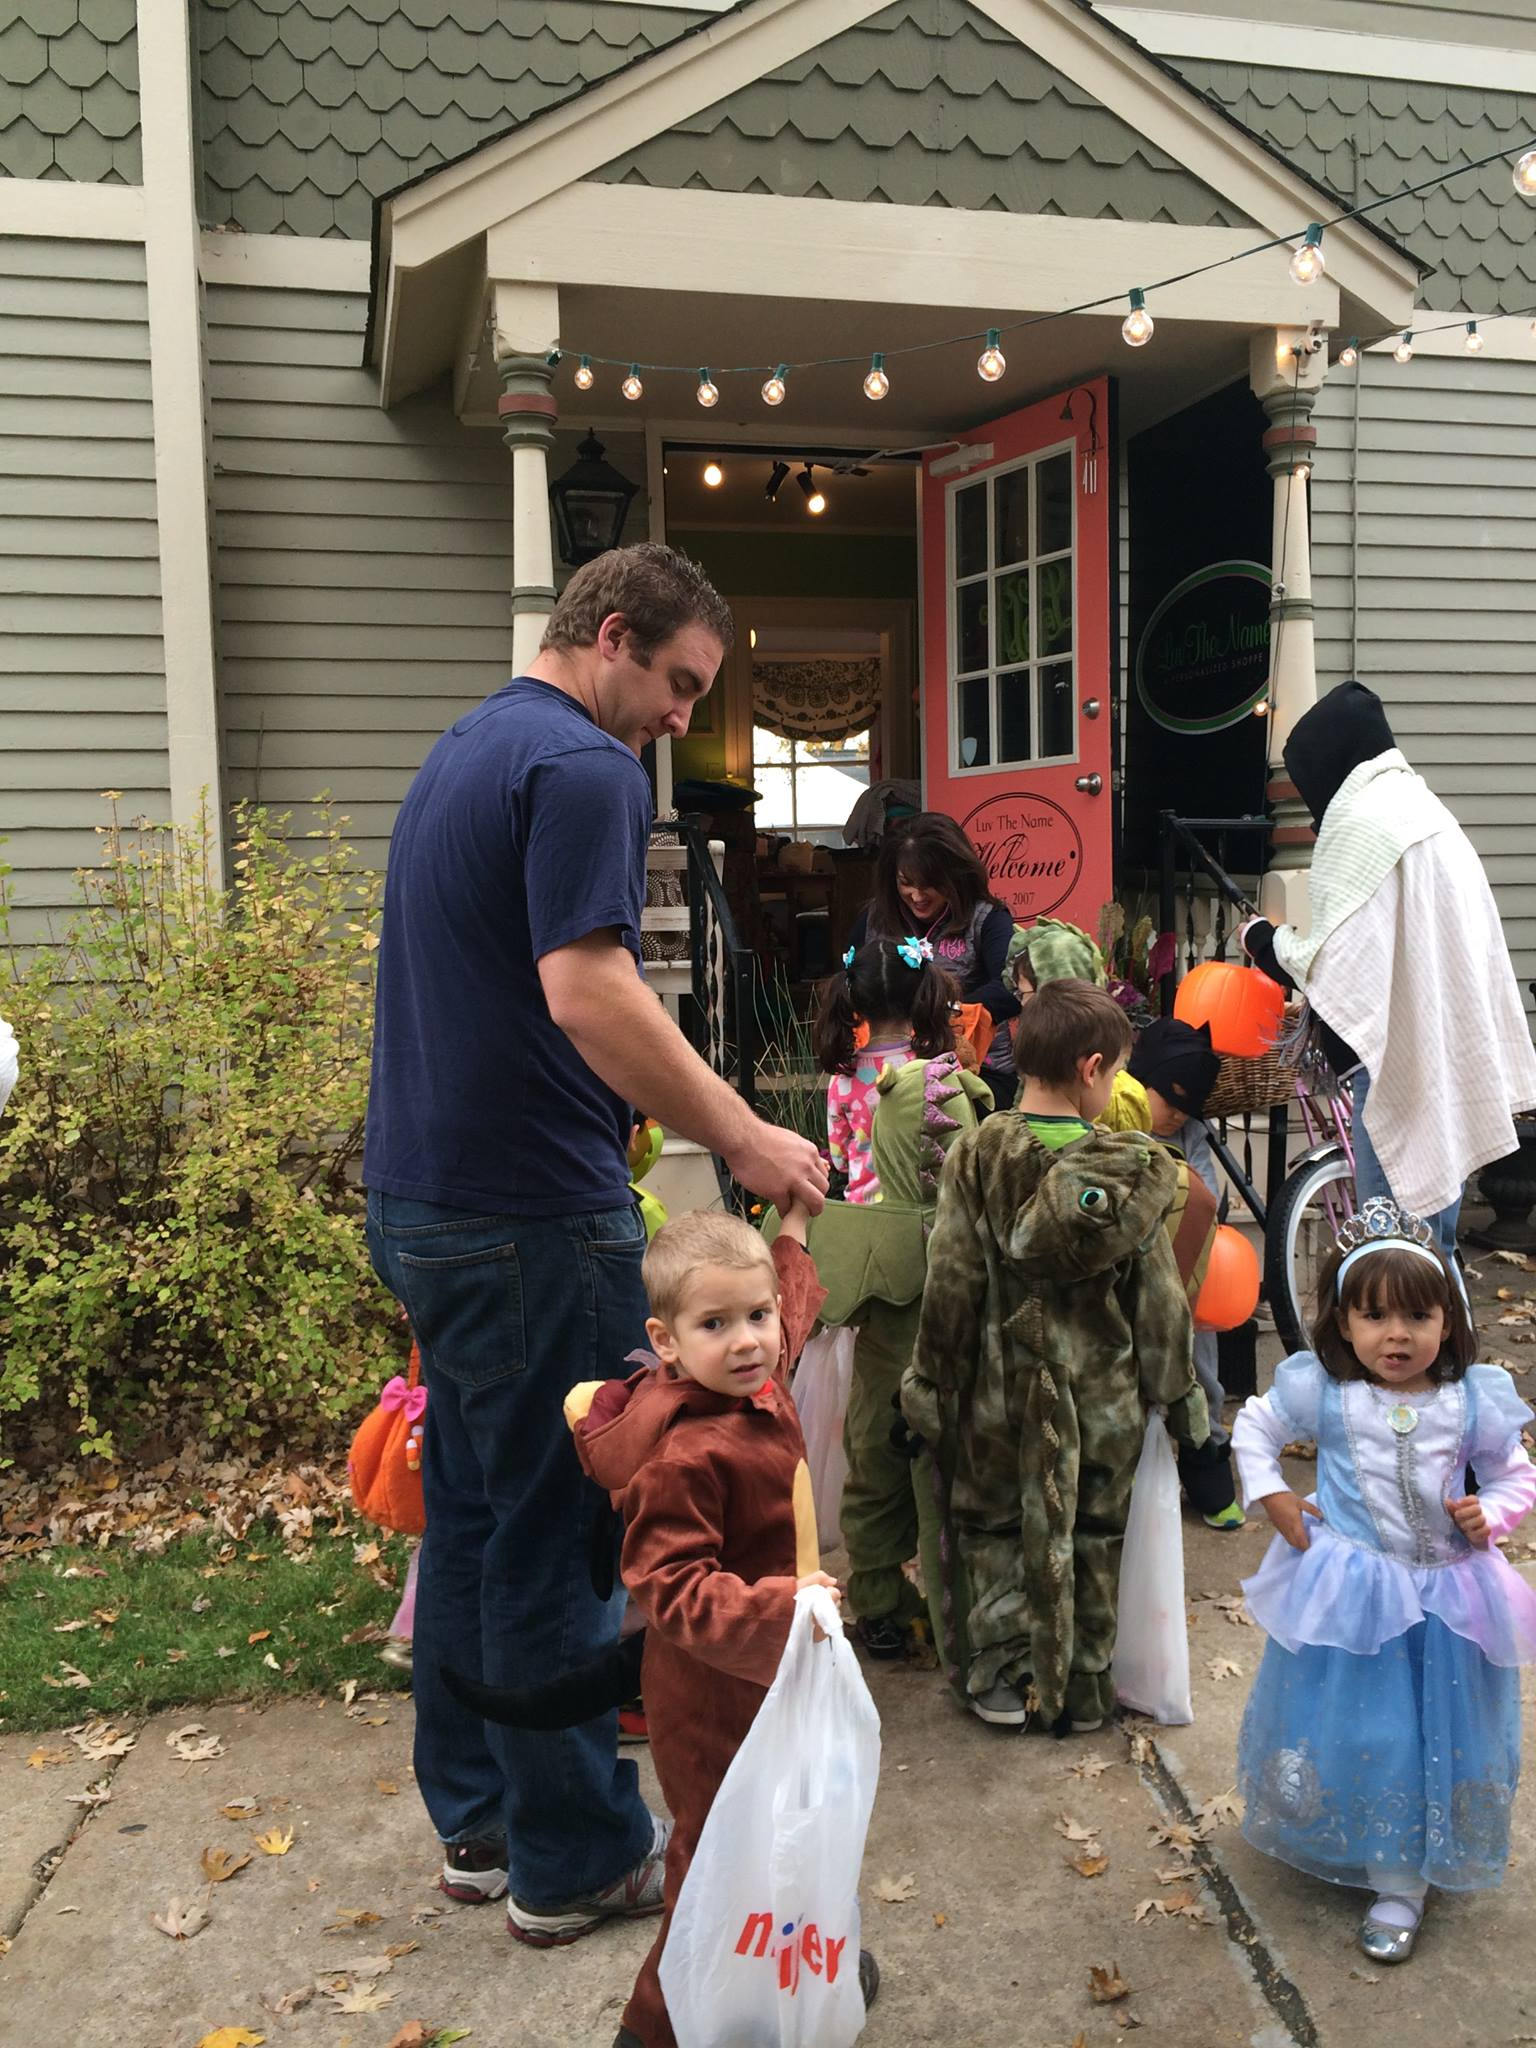 Downtown Trick or Treating - Kim North Byrne